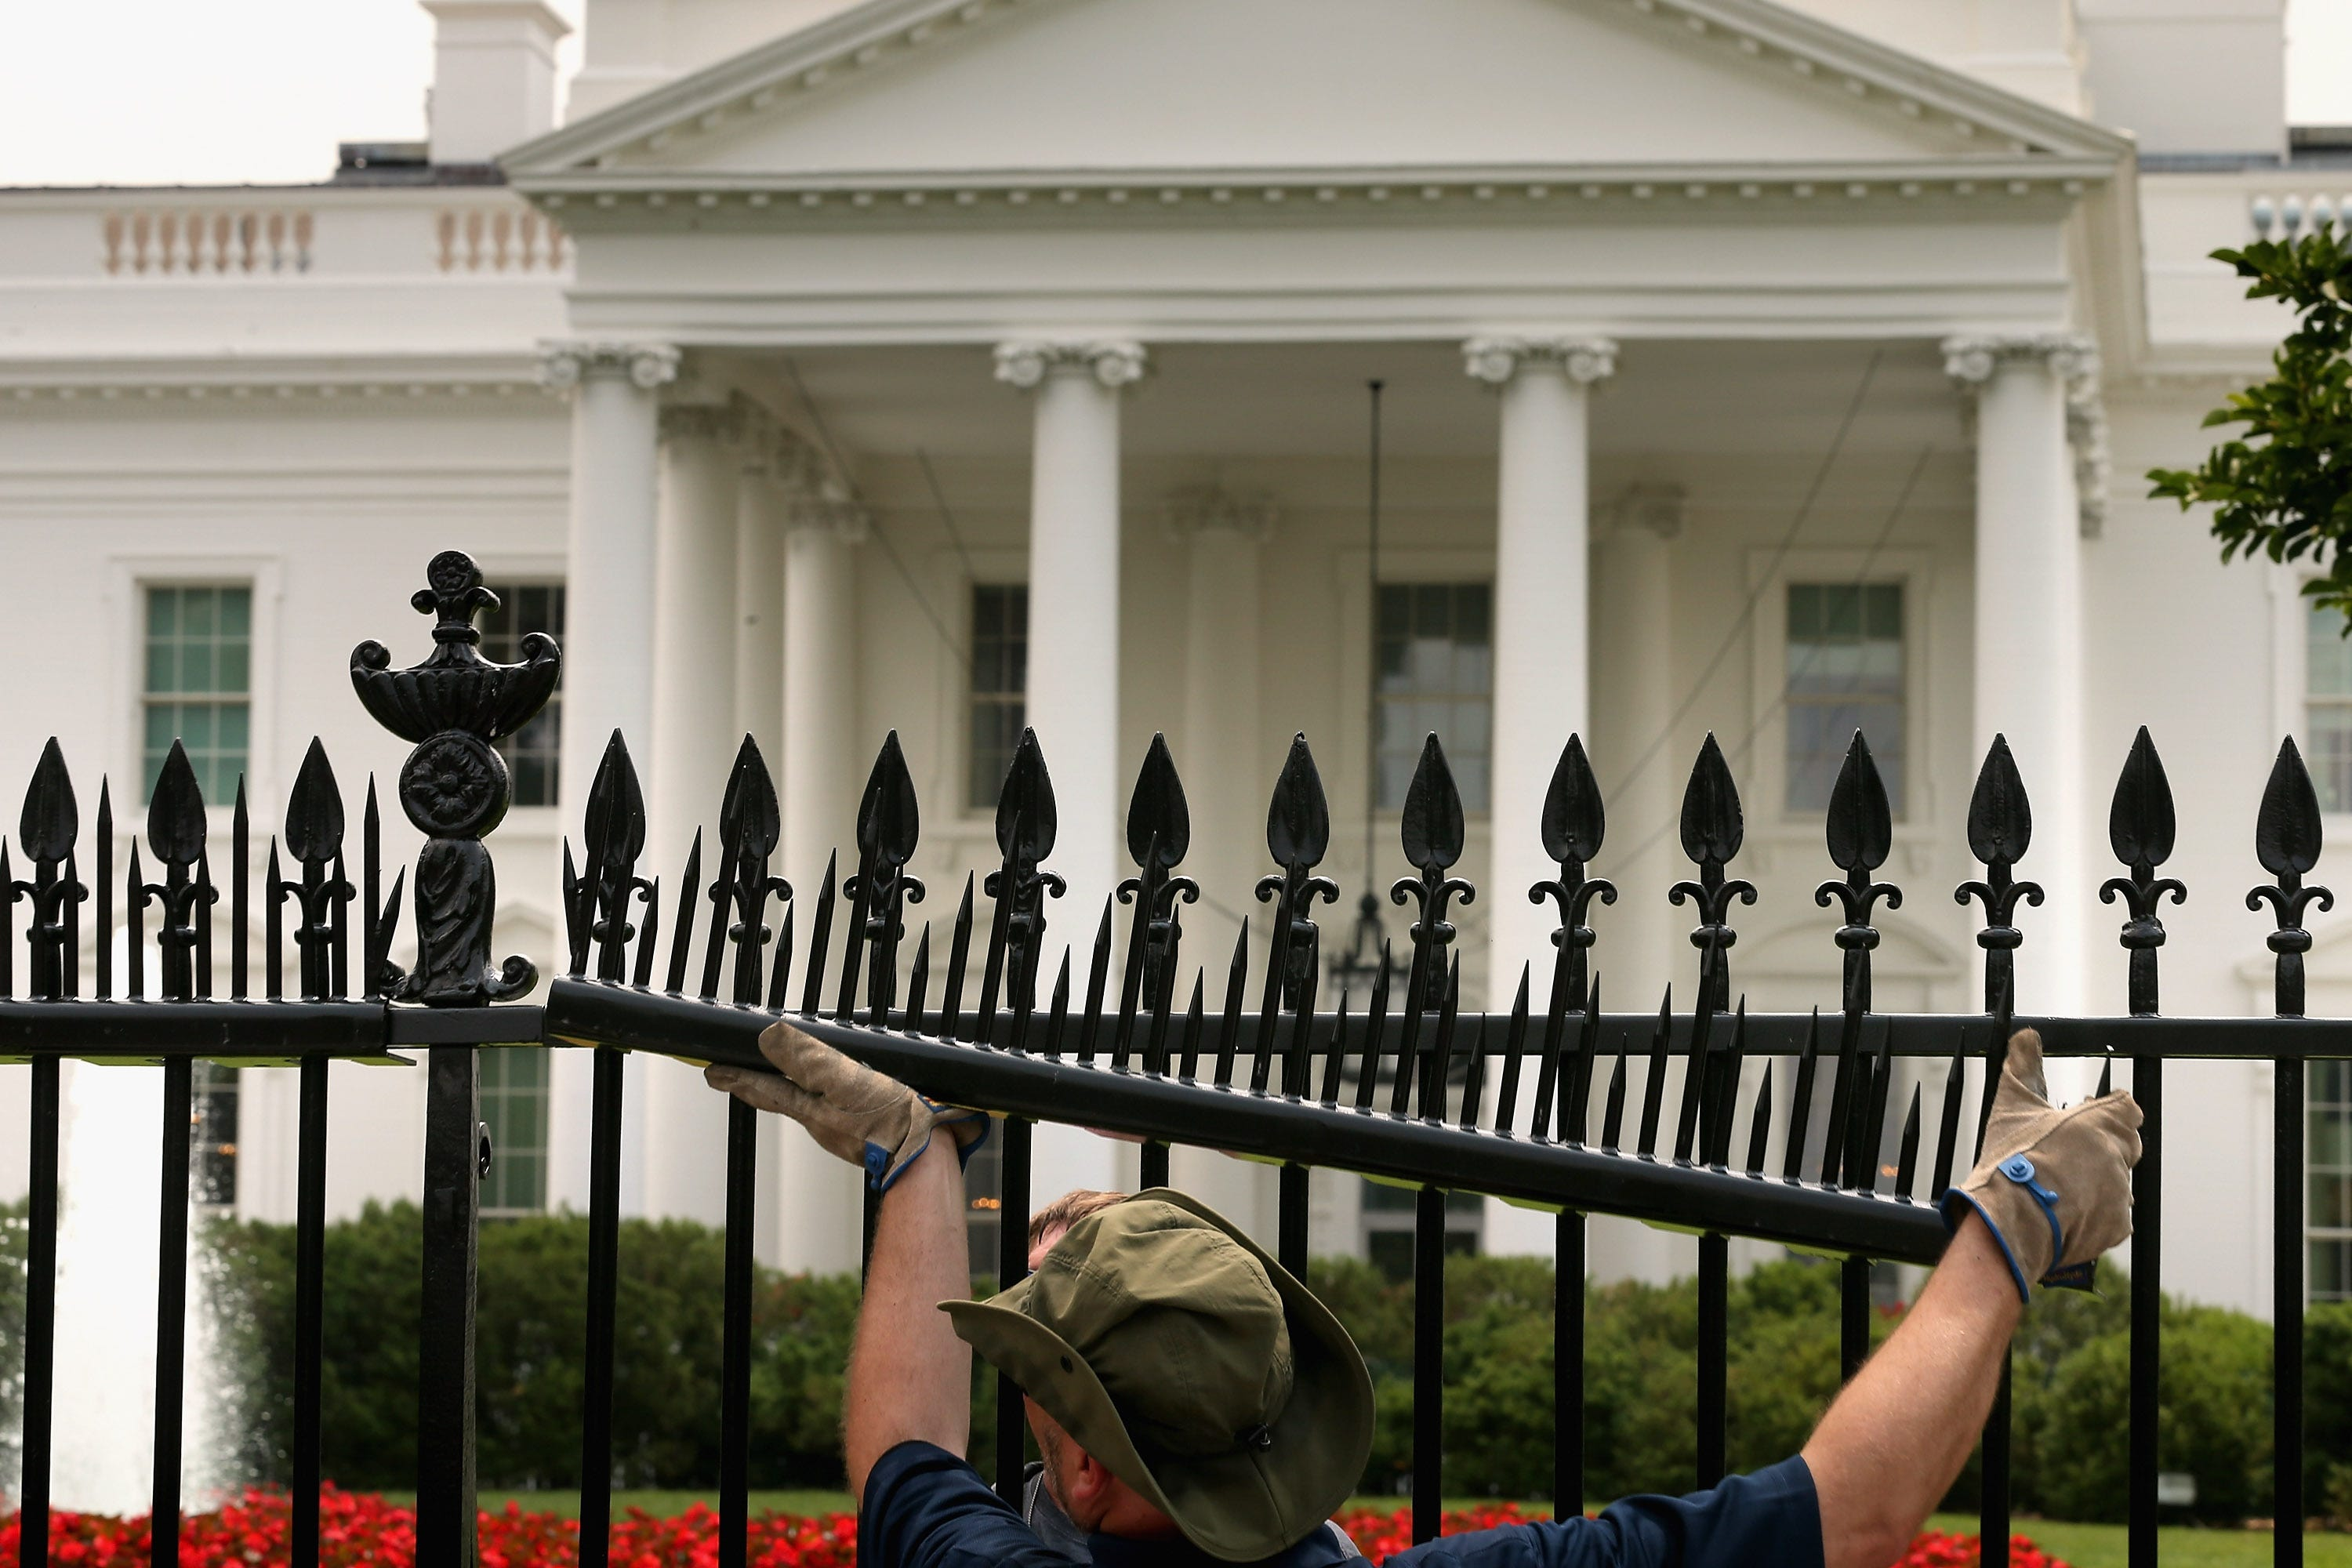 White House Fence Gets New Sharper Spikes